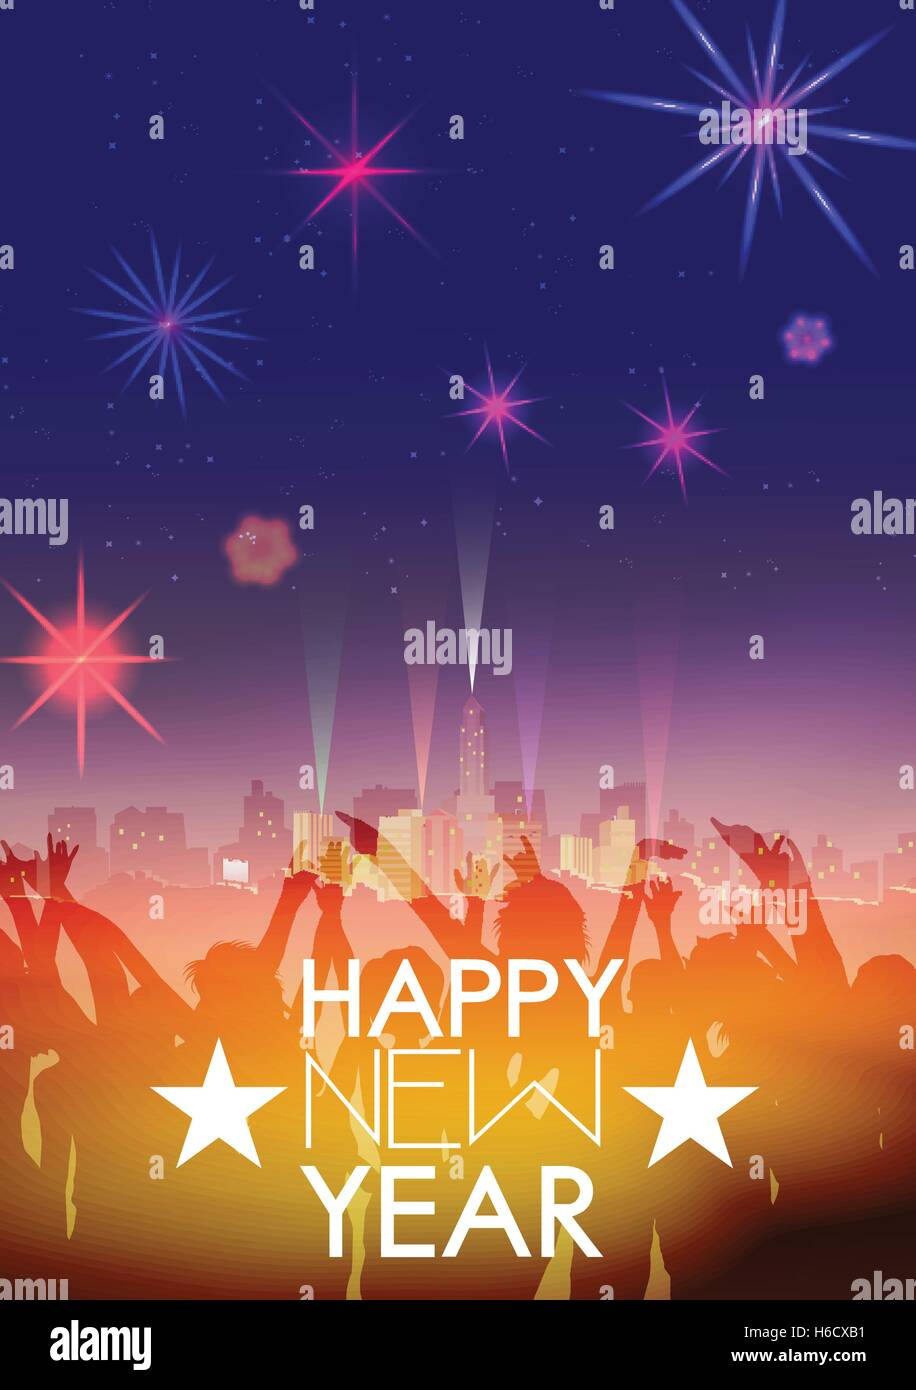 New Year Party Poster Template with City Skyline and Fireworks Stock     New Year Party Poster Template with City Skyline and Fireworks   Vector  Illustration